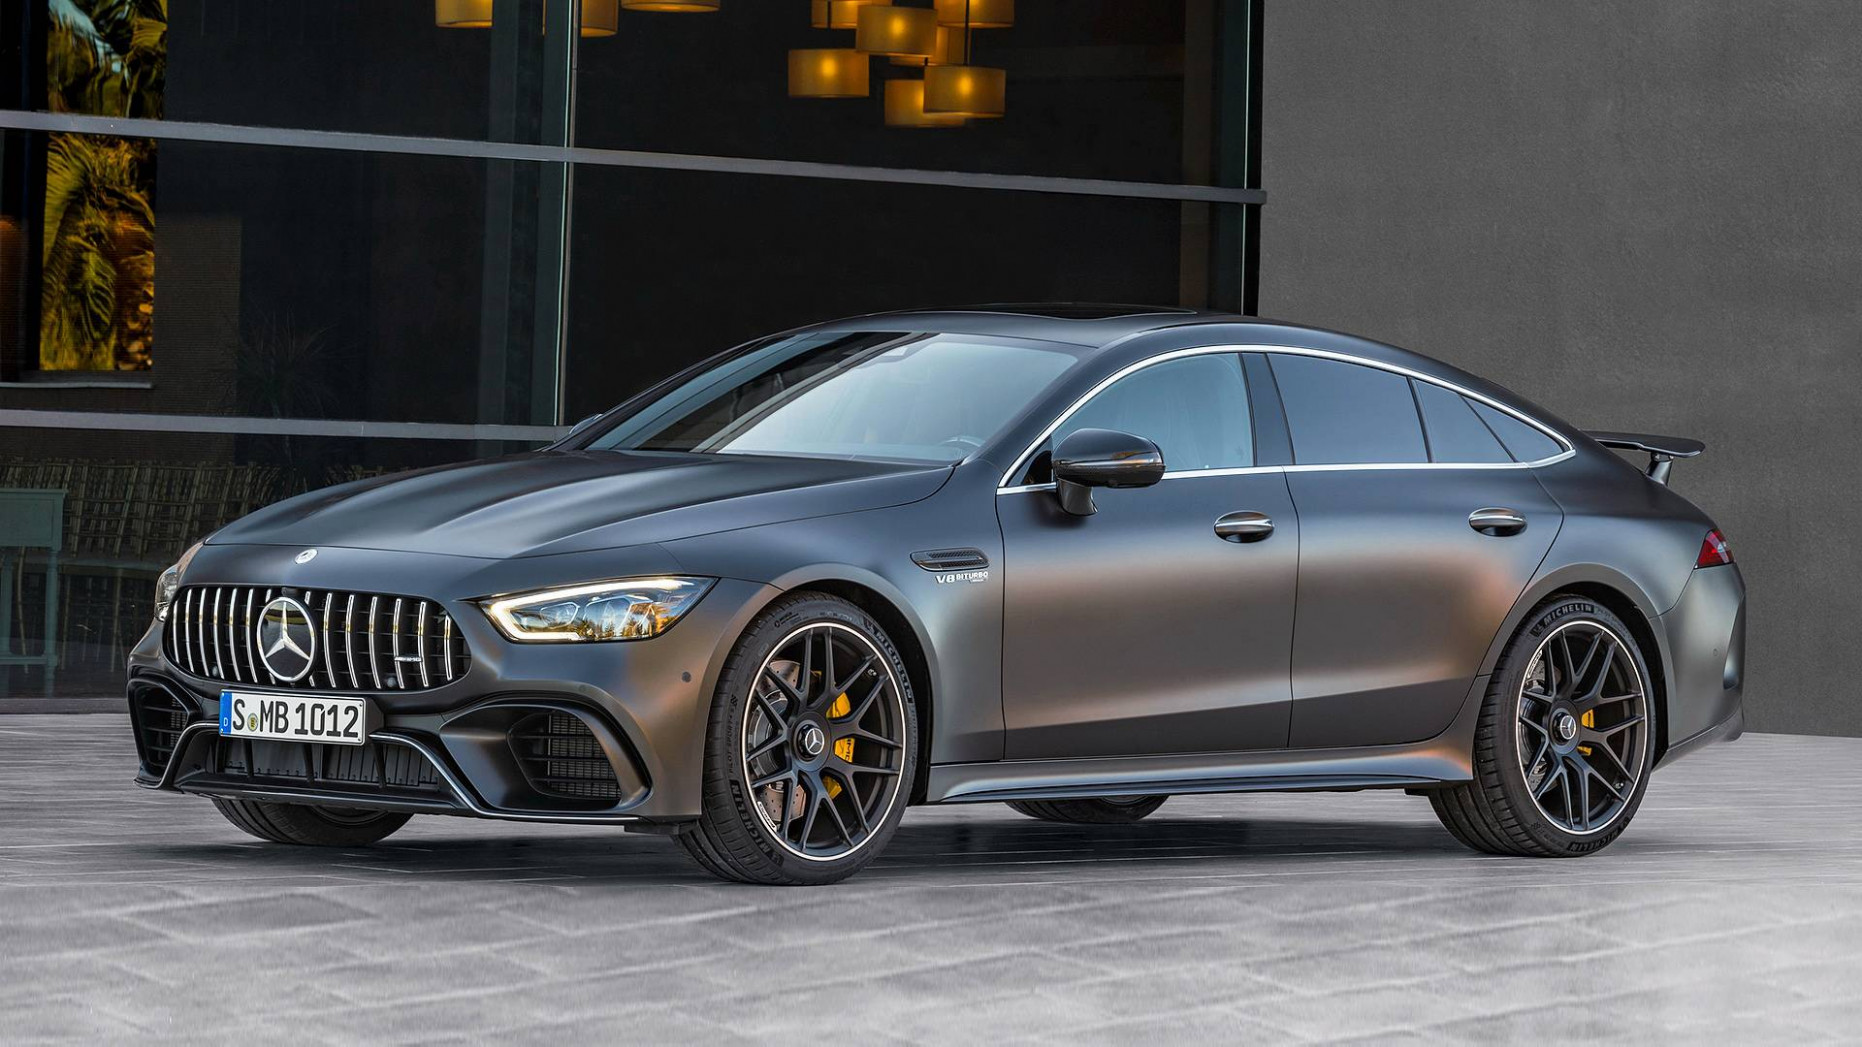 Mercedes-Benz-AMG GT Coupé Viertürer-News und -Tests | Motor8